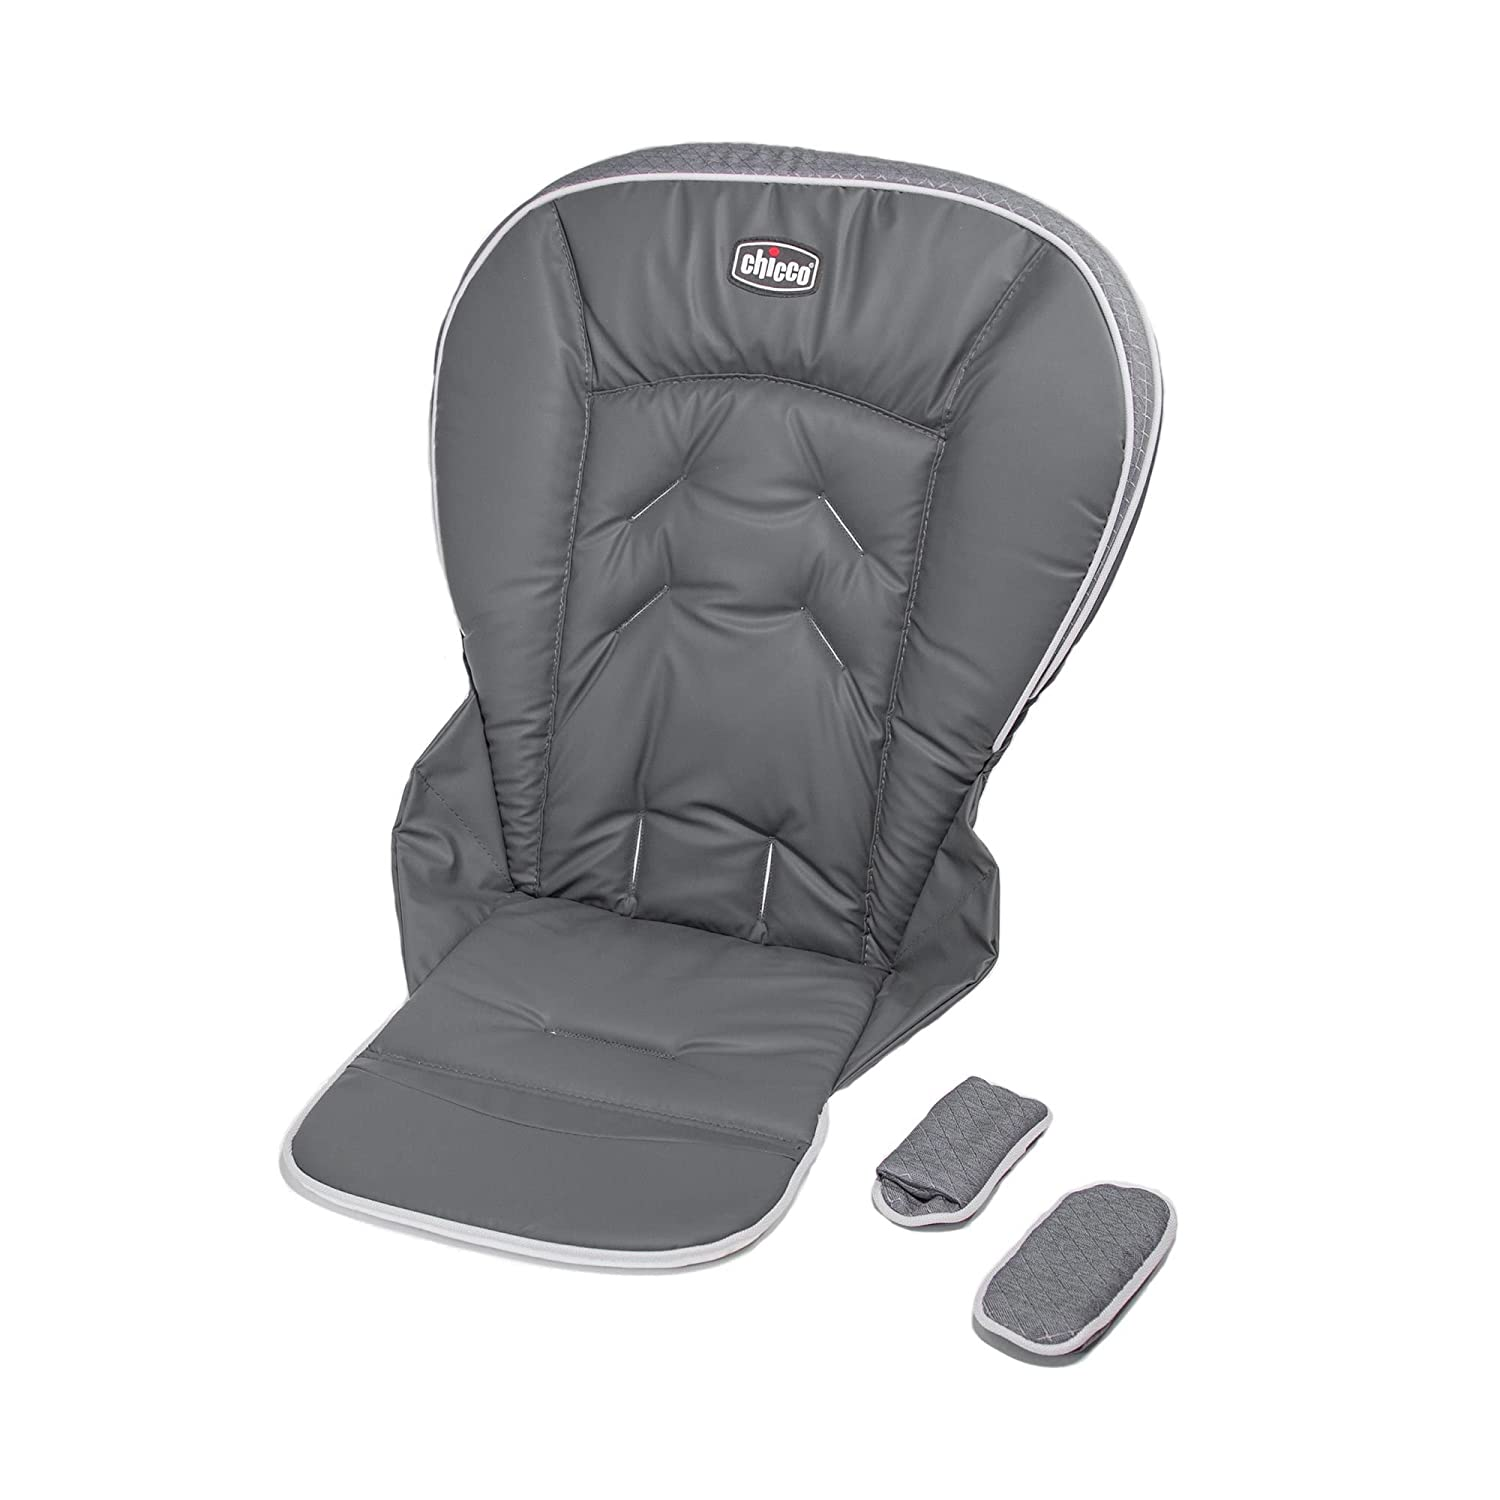 Amazon.com: Chicco Polly Trona asiento – Funda de recambio ...